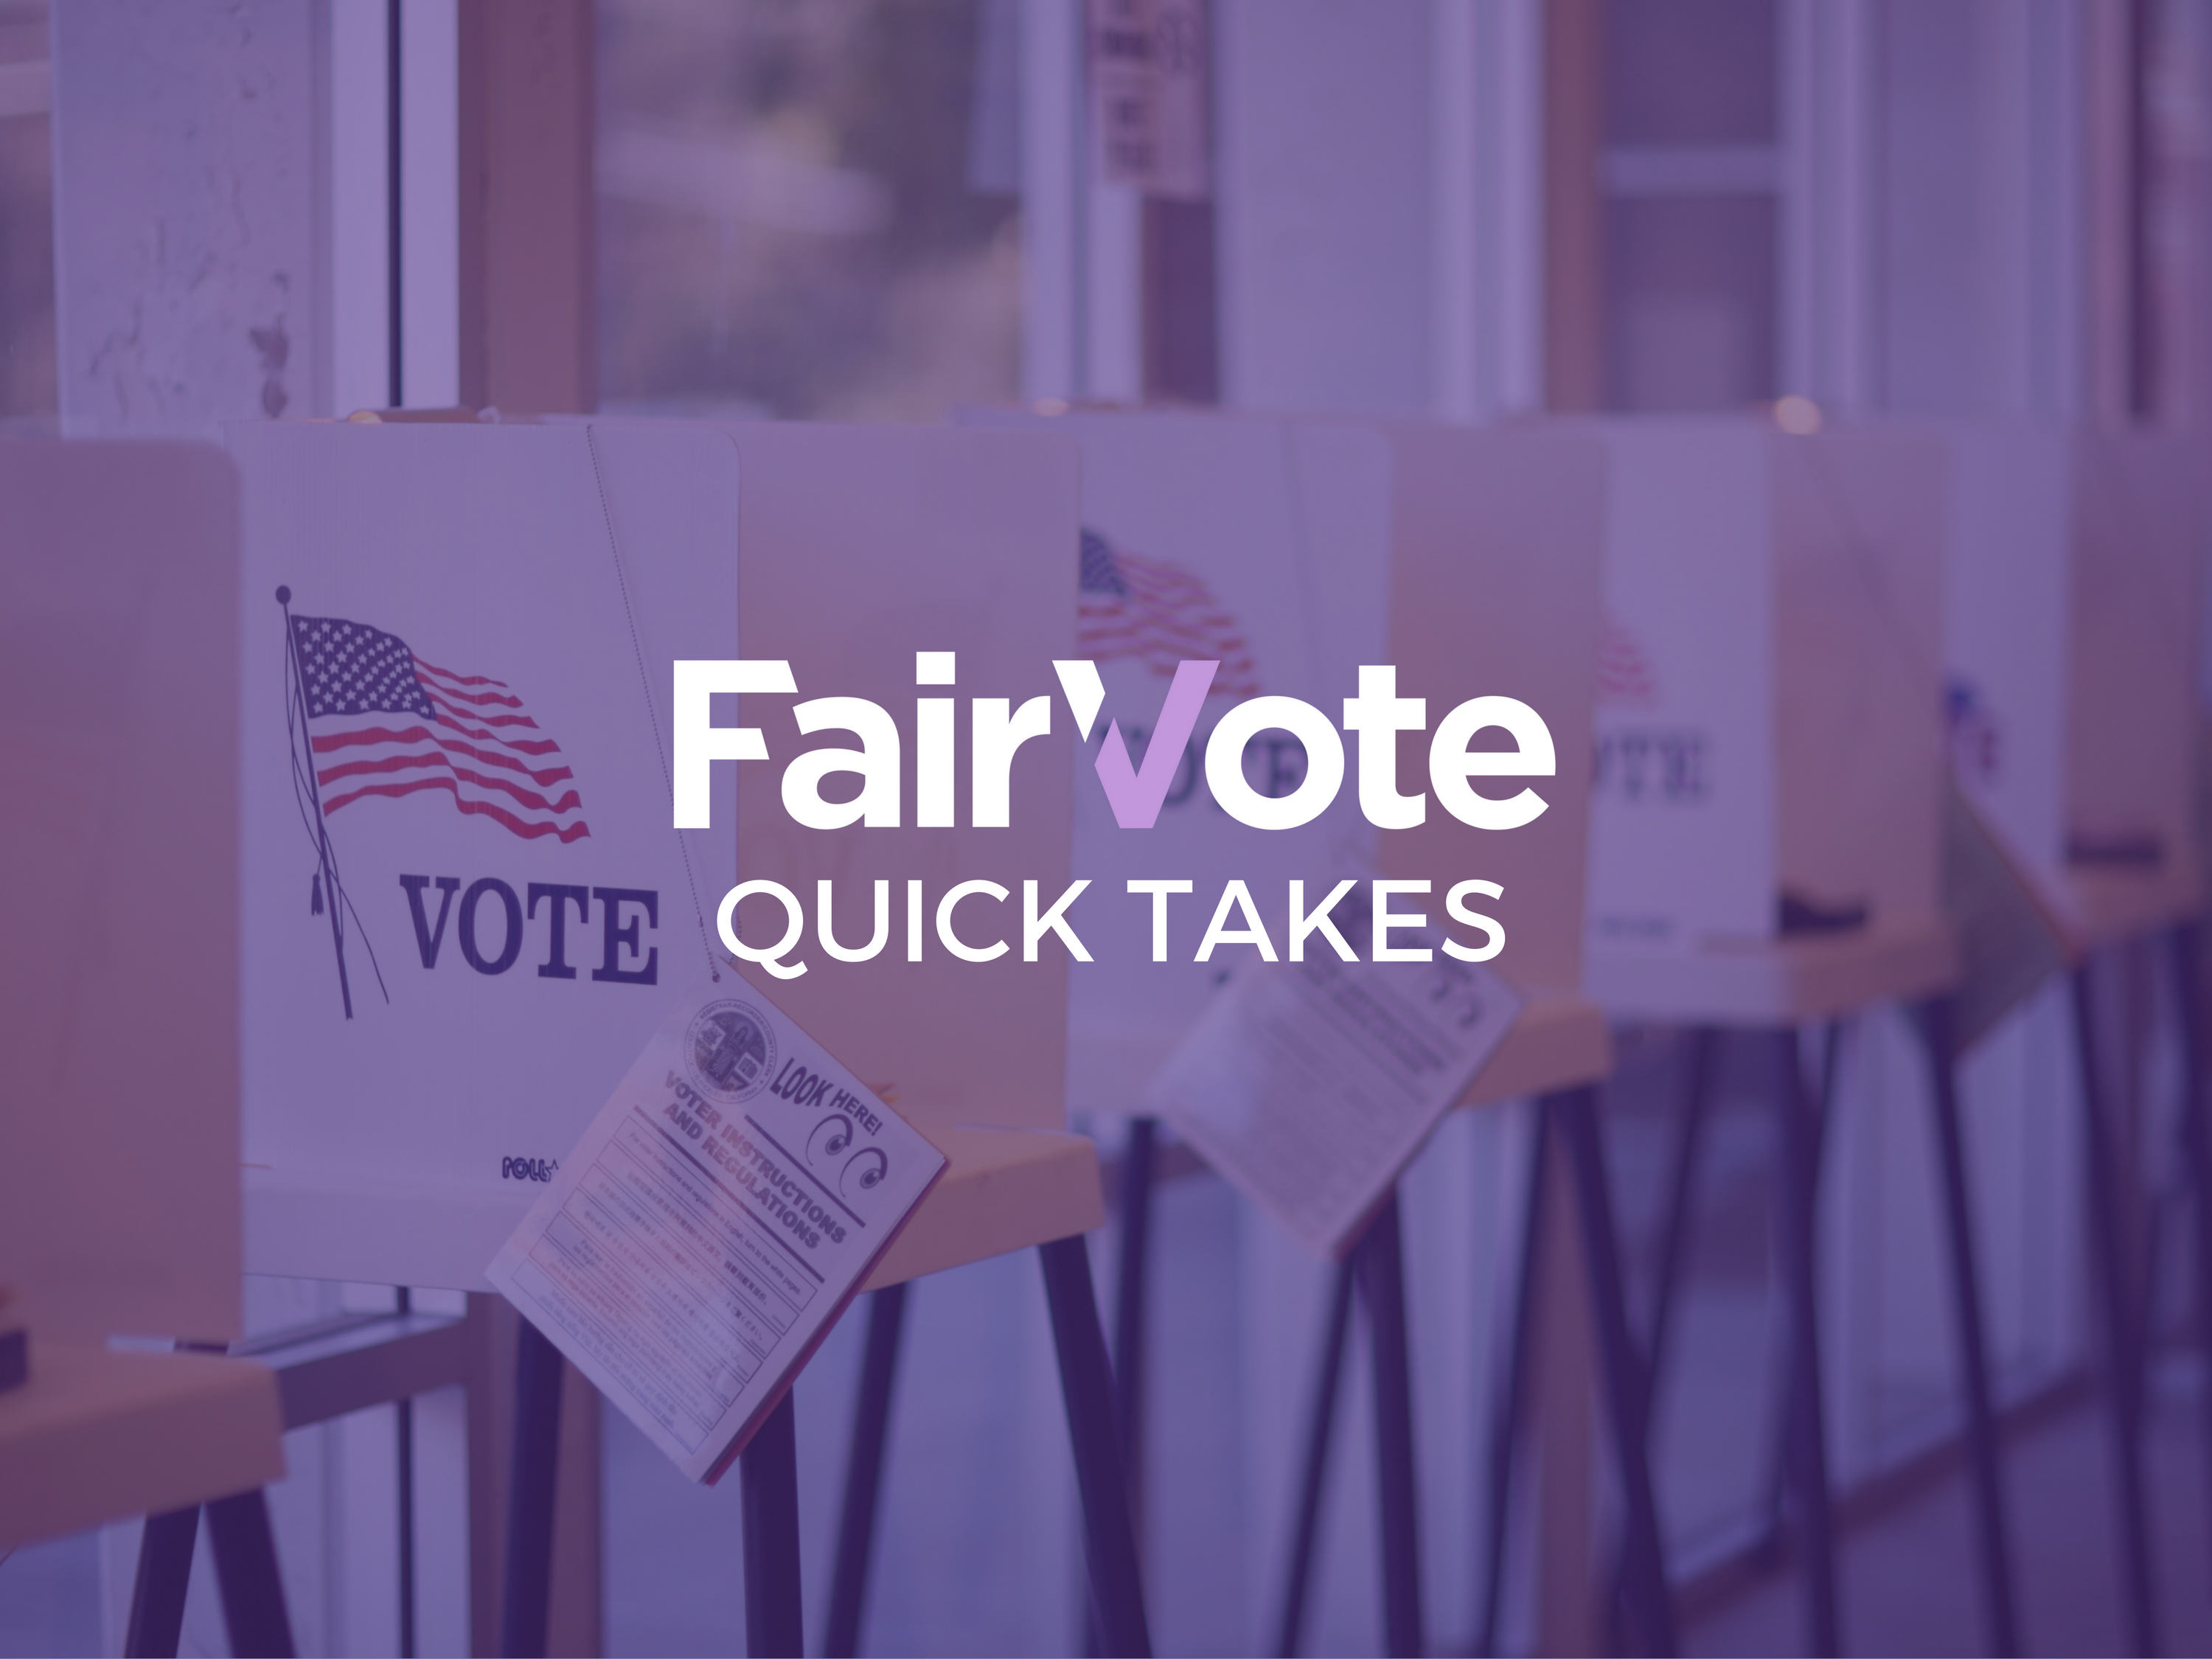 Audio: FairVote's Rob Richie talks Gerrymandering and Fair Representation Voting